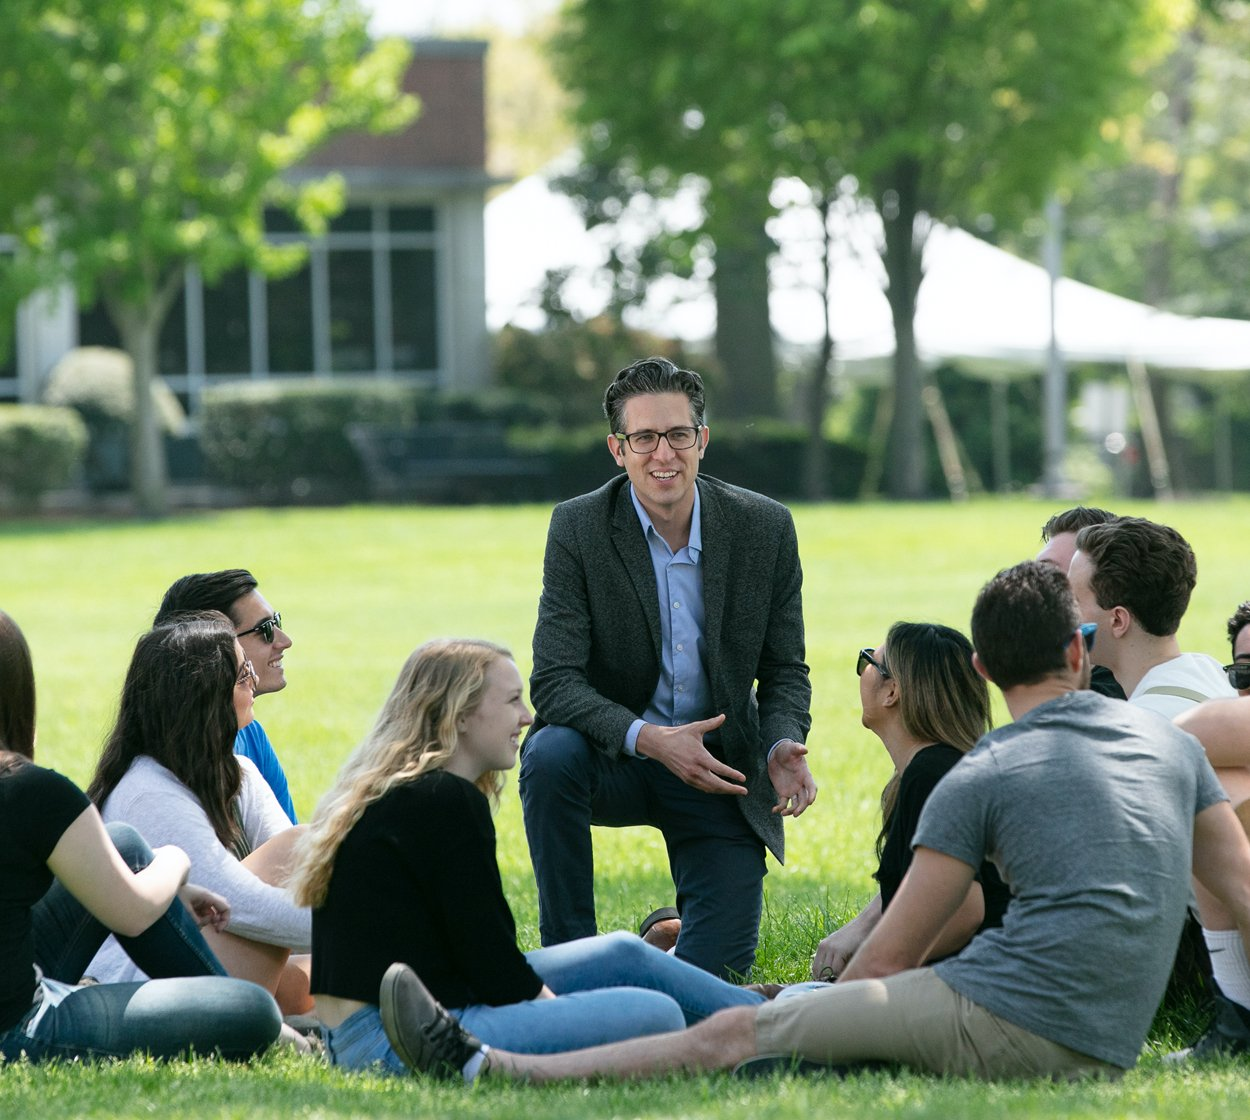 A professor lectures to a group of students outside.